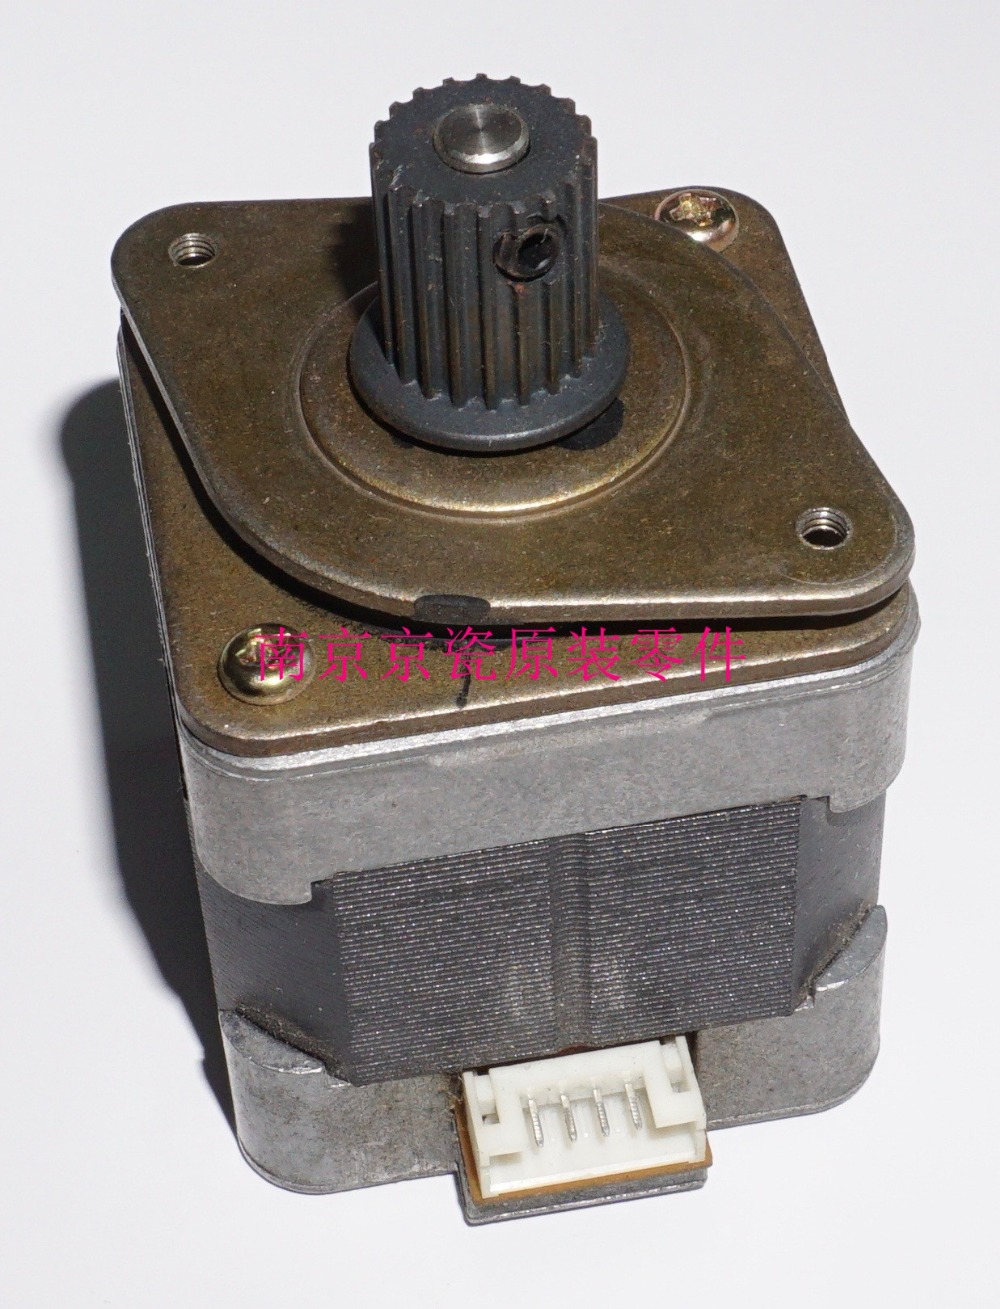 Used Well Kyocera 3AL27011 MOTOR PAPER FEED for:KM 4030 5035 4530 5530 6330 7530 SRDF 2 Printer Parts     - title=